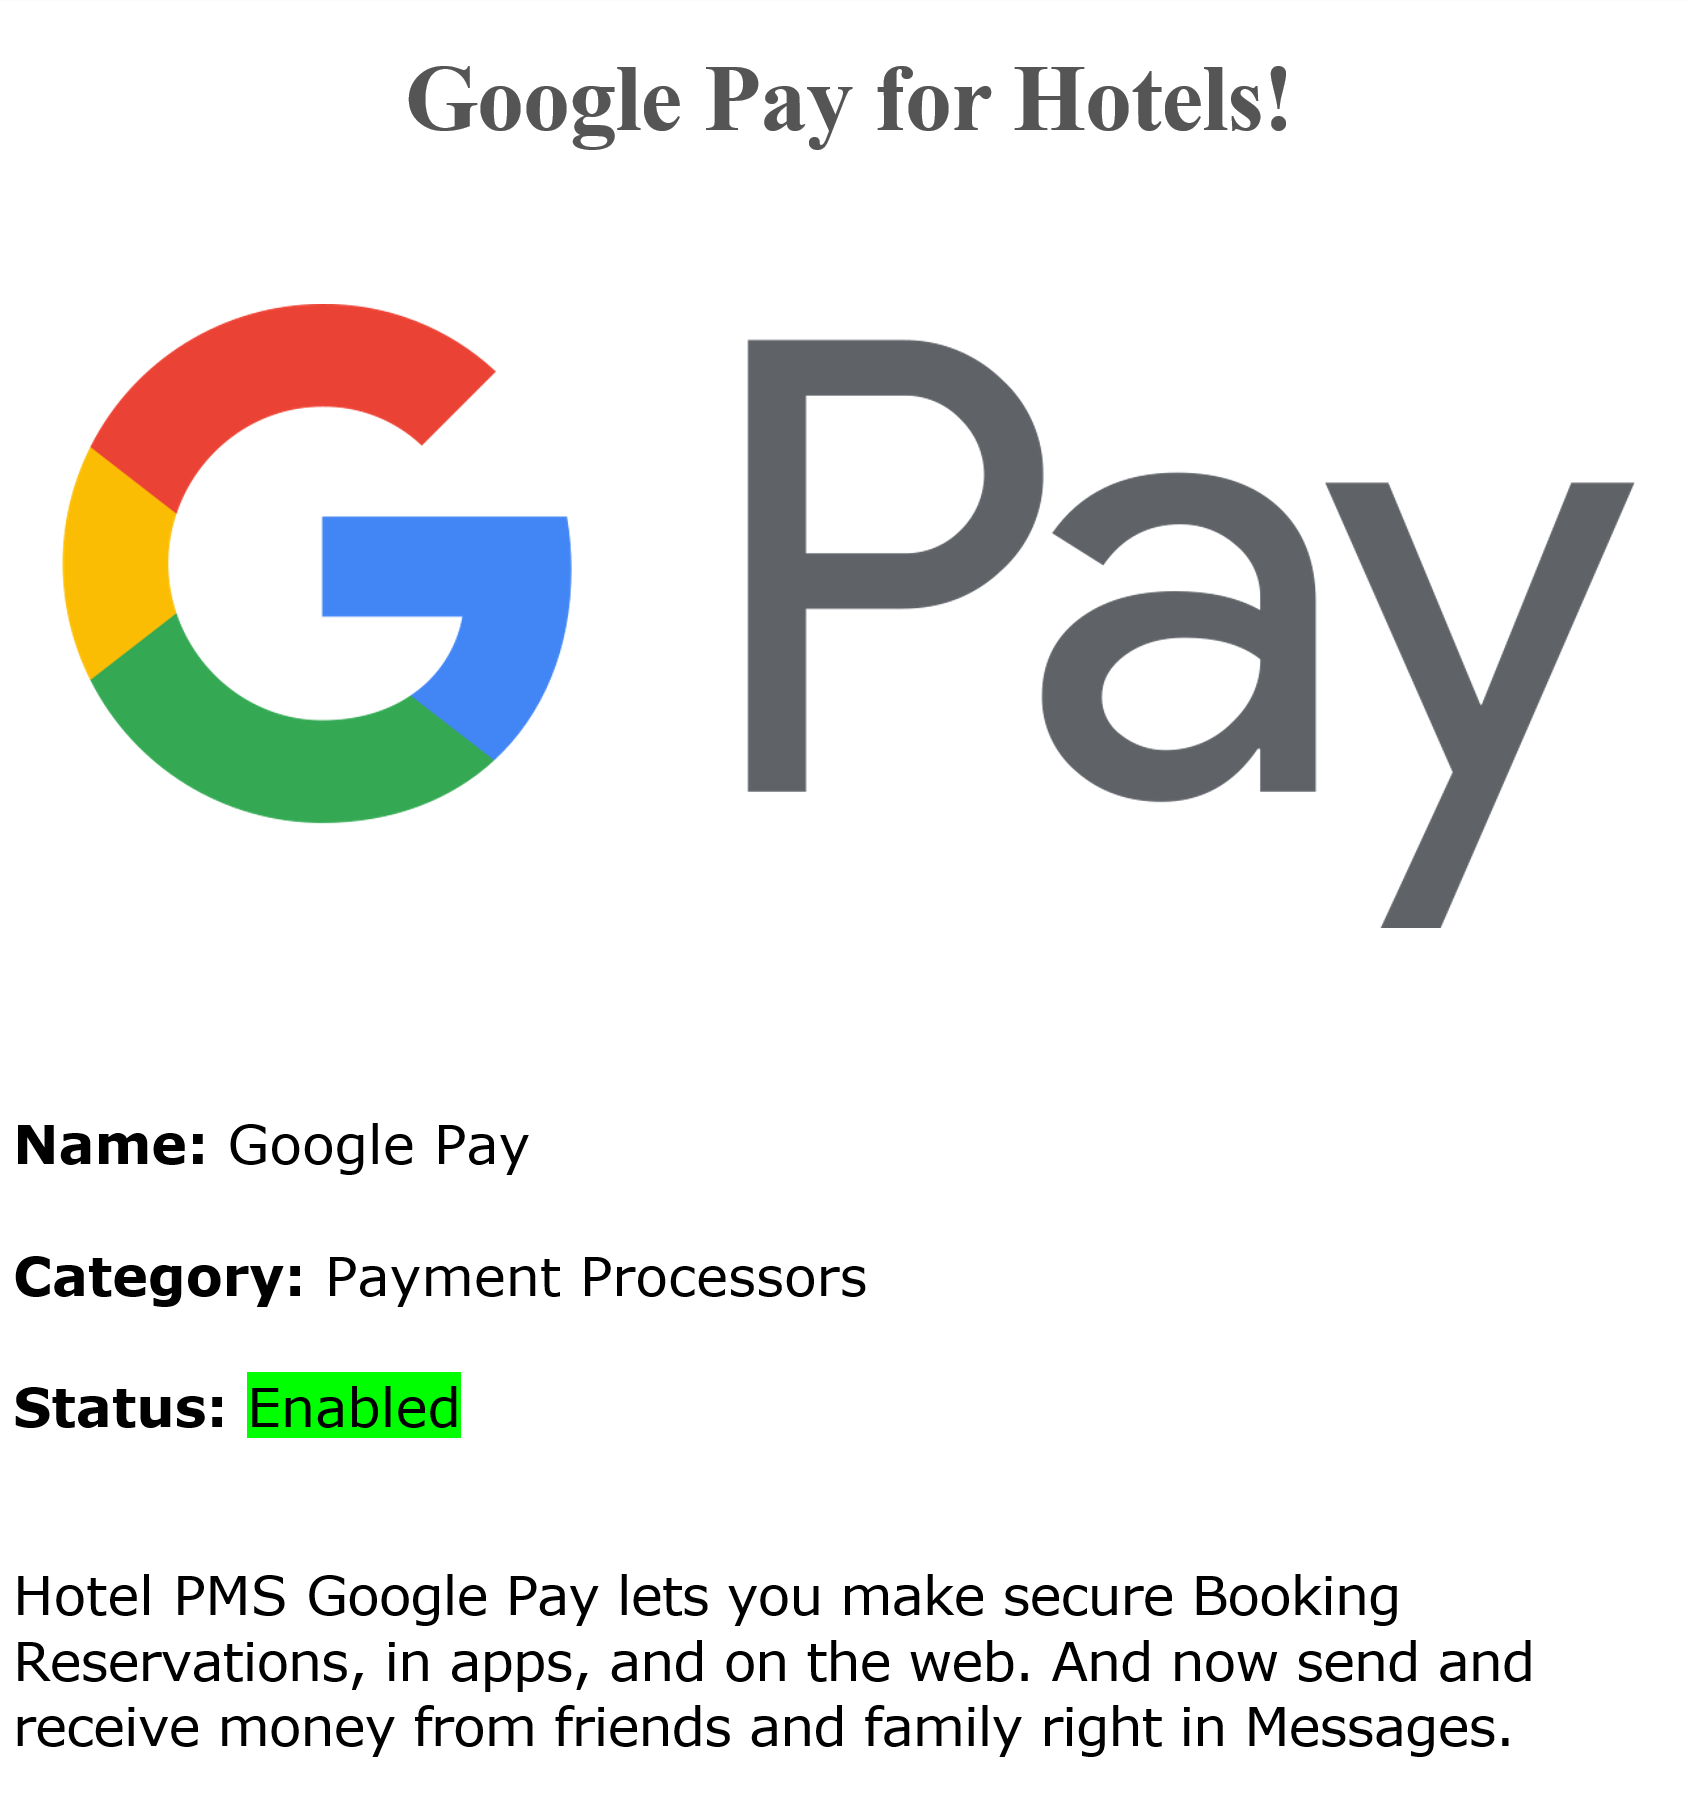 Google Pay Credit Cards Payments Processing | Android Google Pay Credit Cards Payments Processing for hotels and b&b